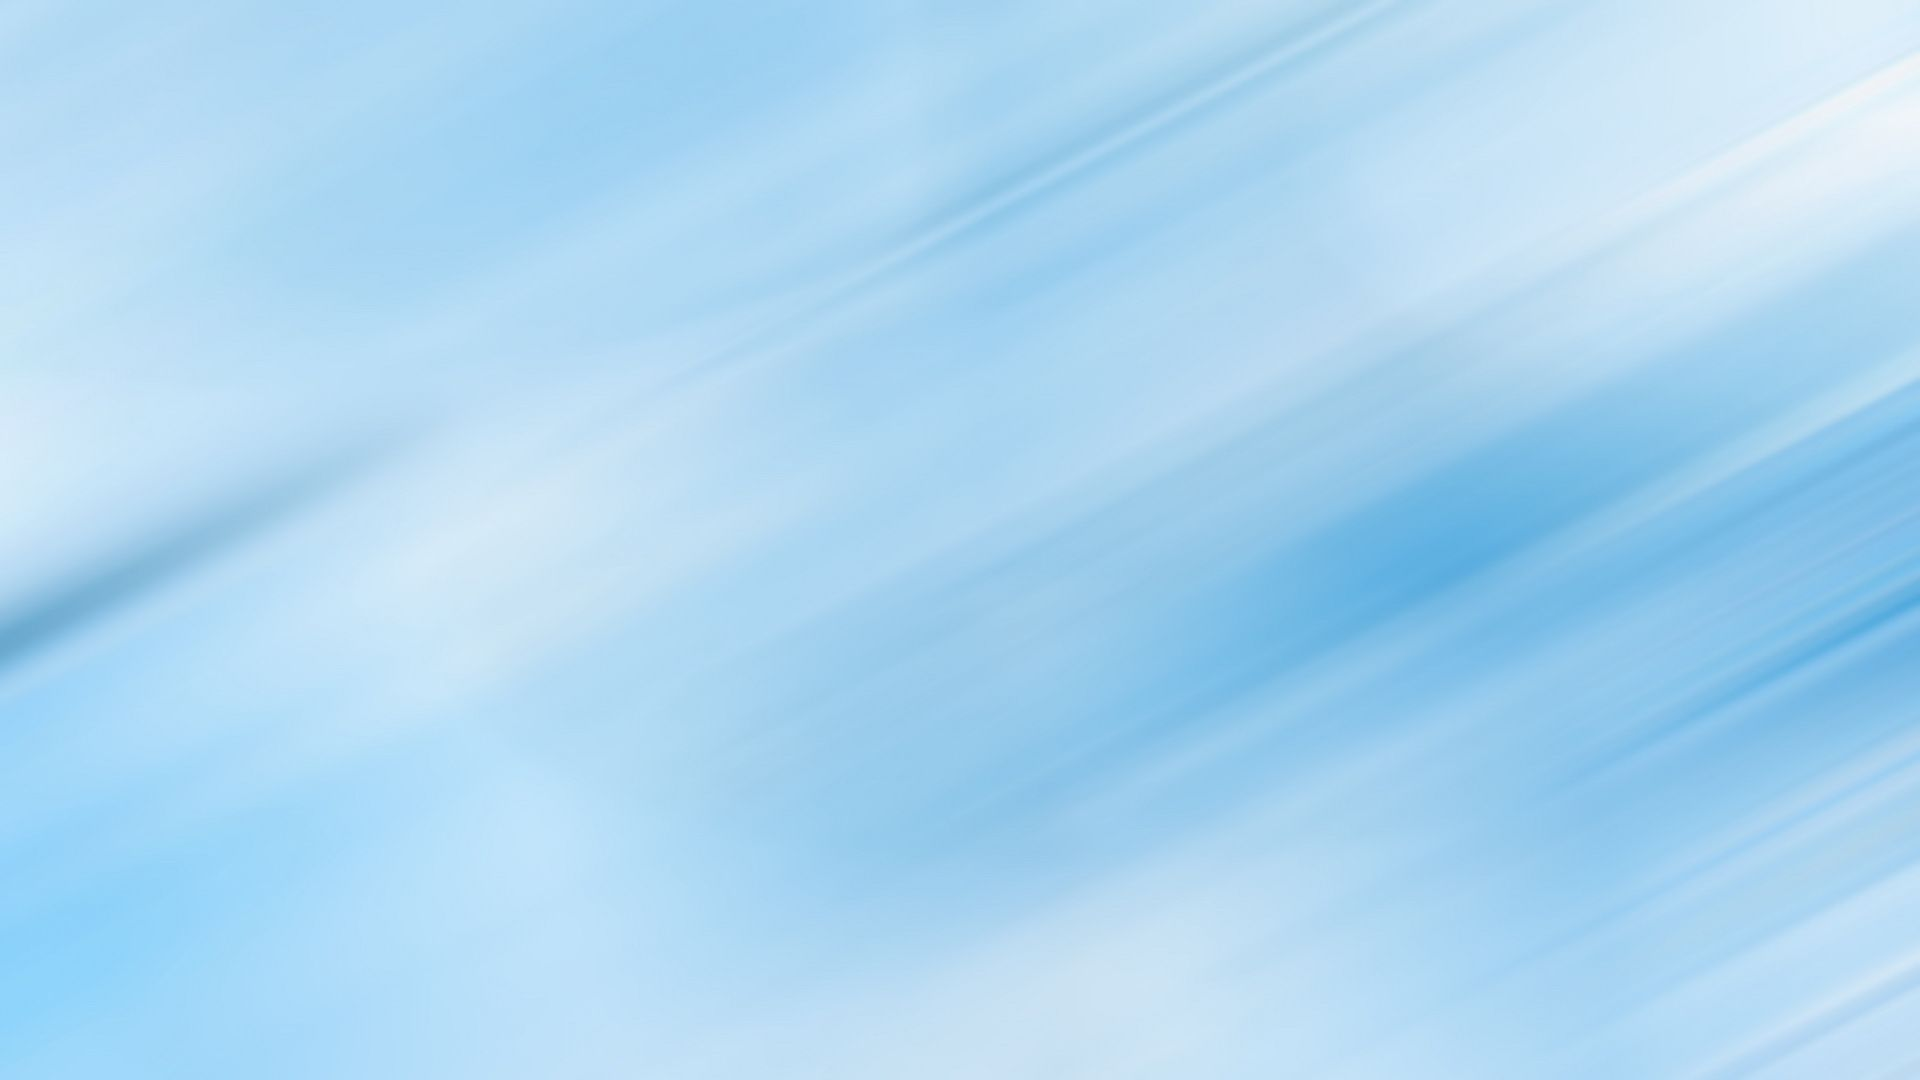 Sky Blue Background wallpaper Blue background wallpapers